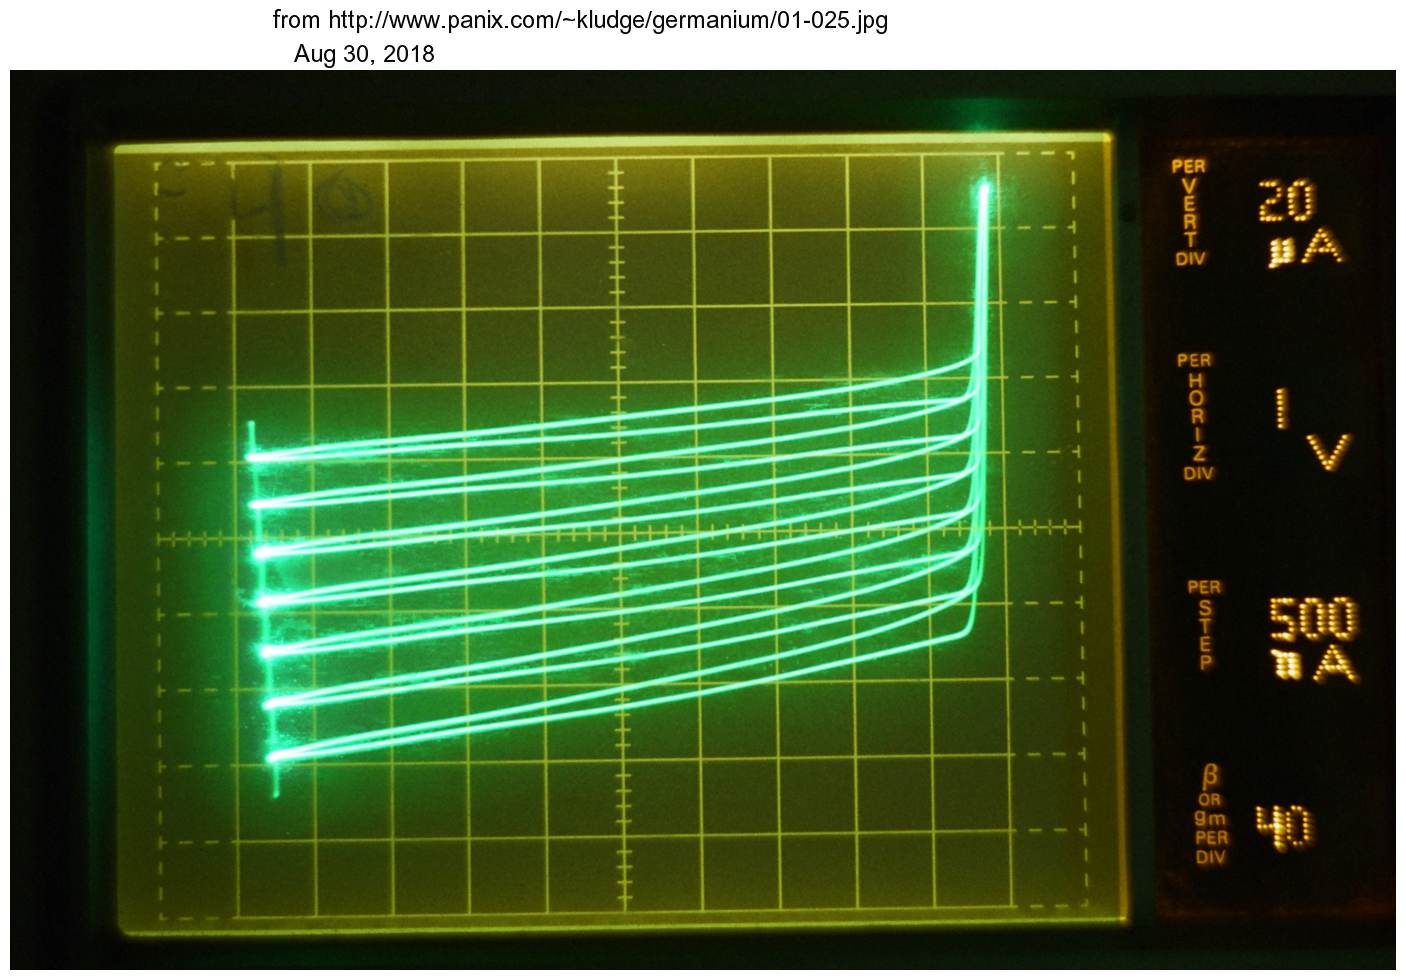 Weirdparts Docircuits Circuit Simulator Online Schematic Editor Here Is One Photo Russiantransistorcurvetrace